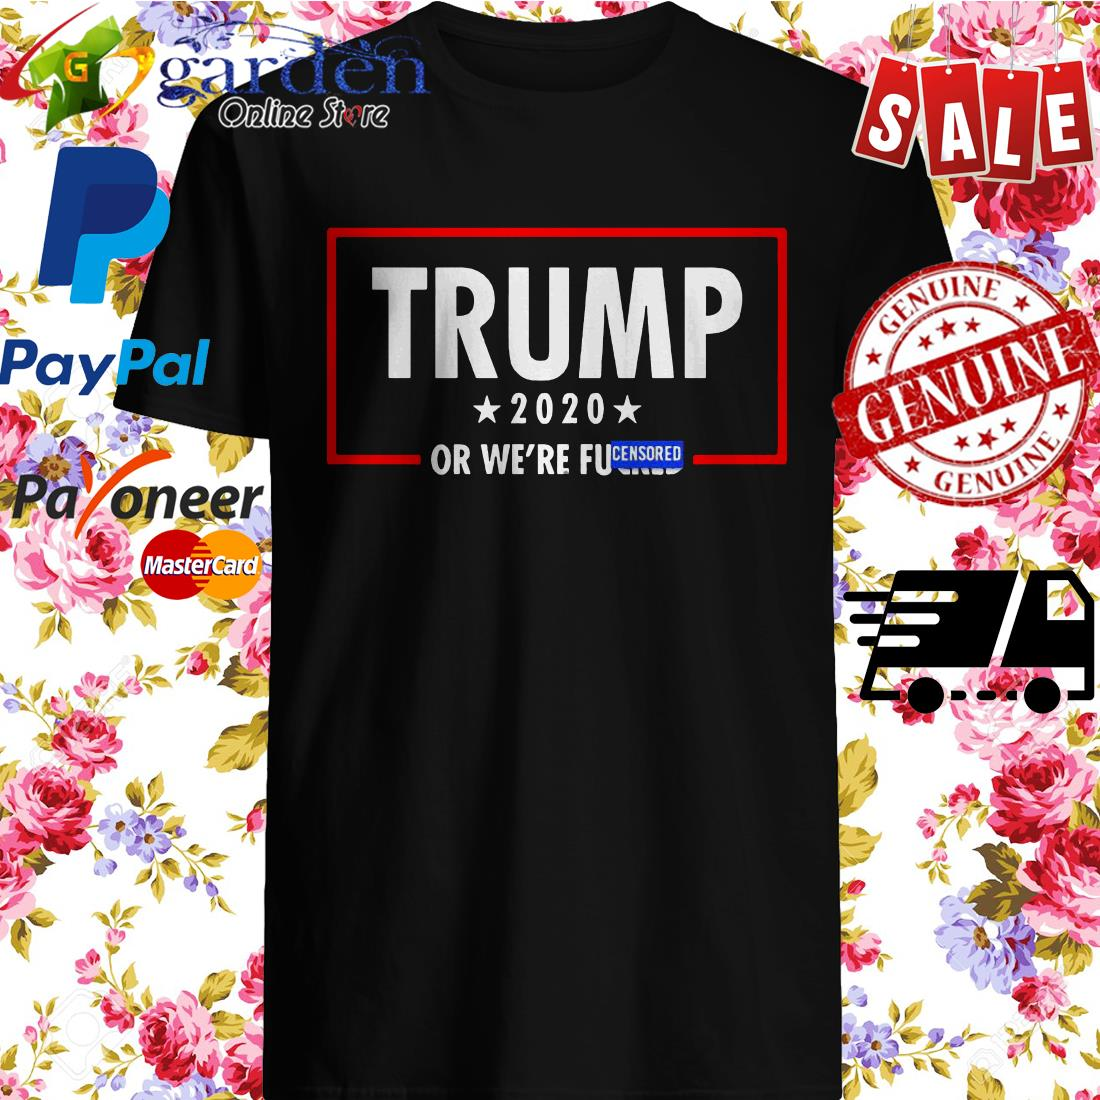 Trump 2020 Or We're Fucuked Censored Shirt